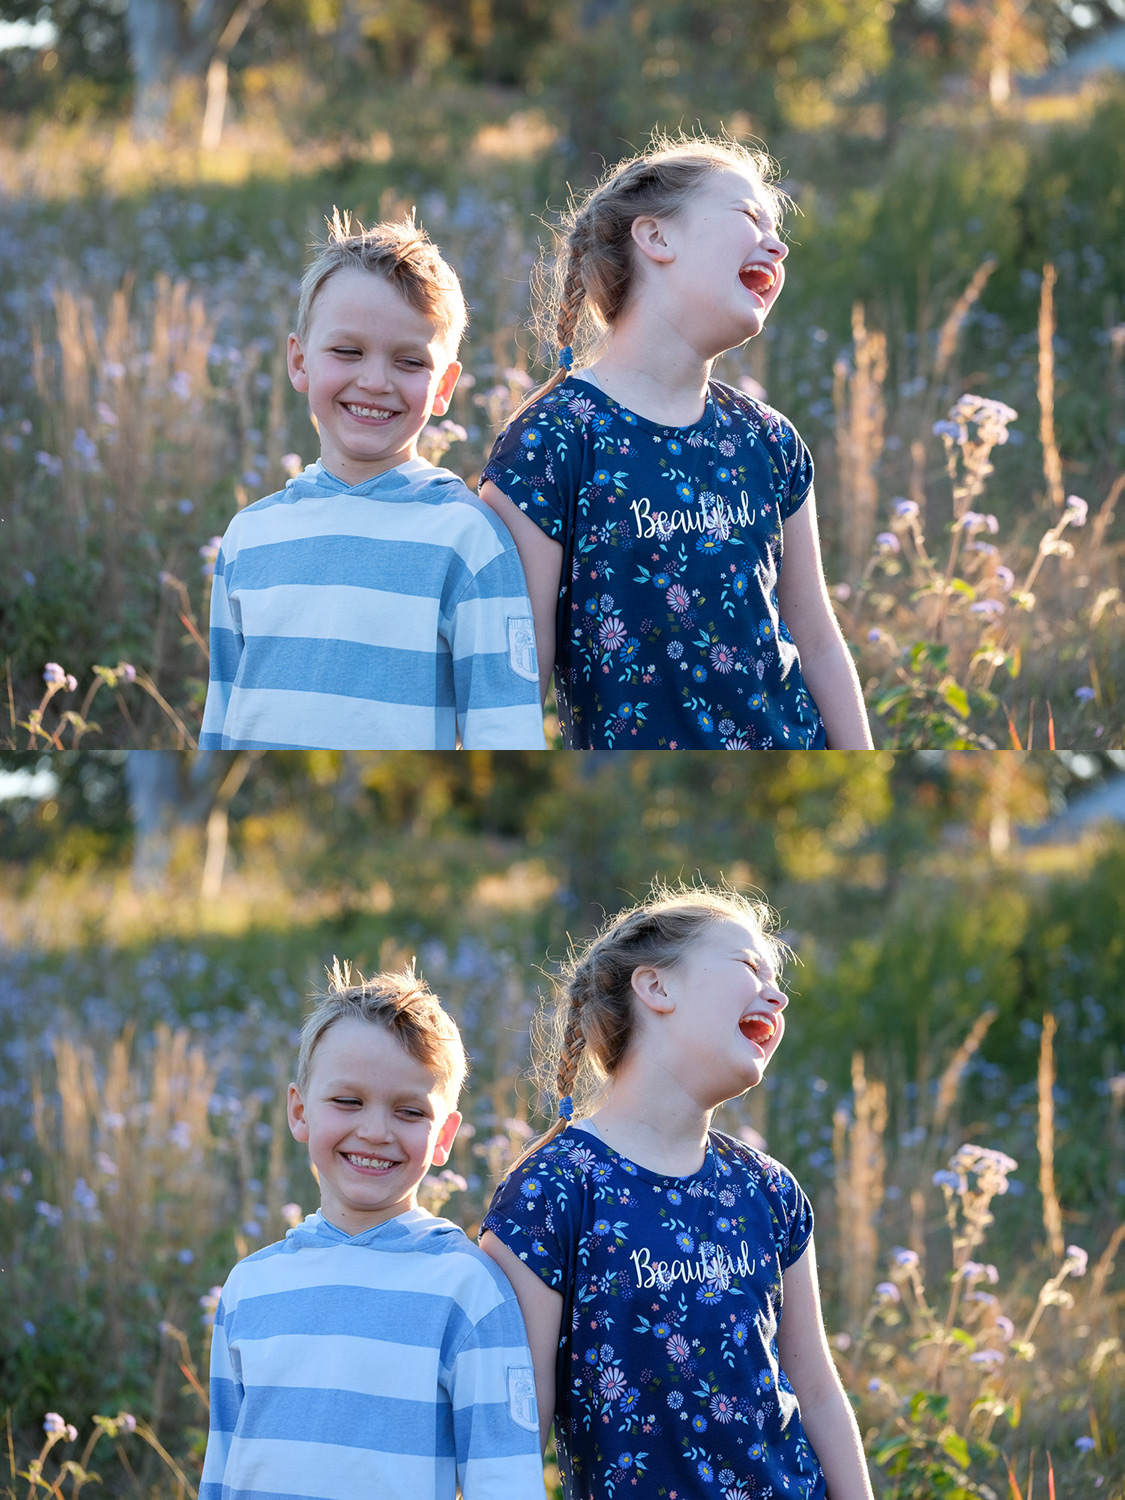 Image: Top: Kids in a filed RAW file. Bottom: Asita JPG. Lovely colors and tones, though they are no...